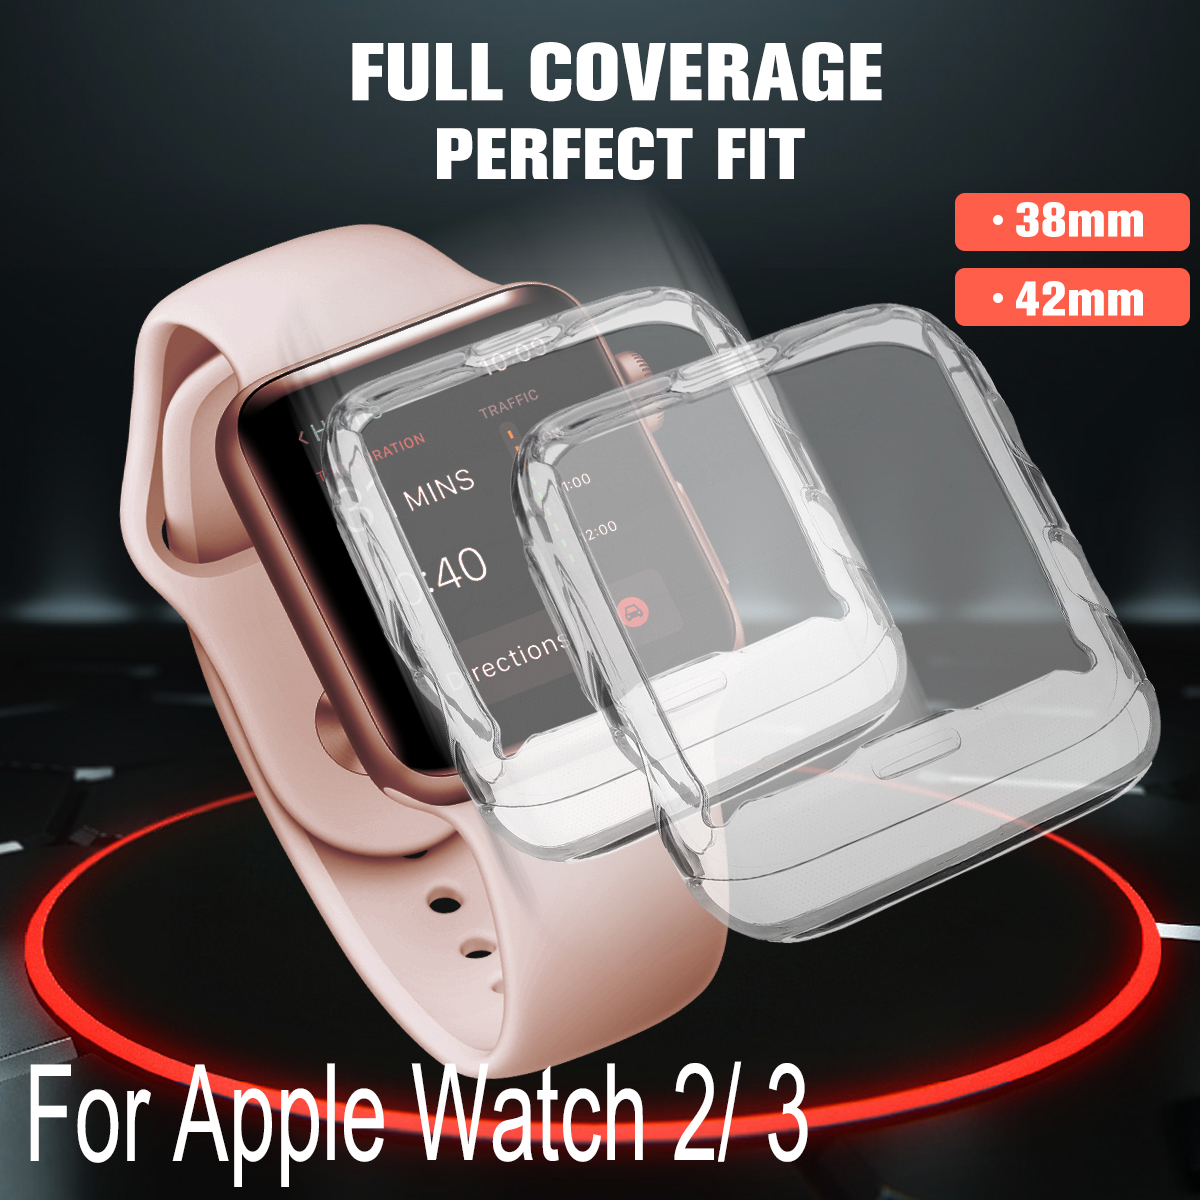 Clear Tpu Full Cover Case Screen Protector For Samsung Galaxy Watch 42 Mm Cell Phones & Accessories